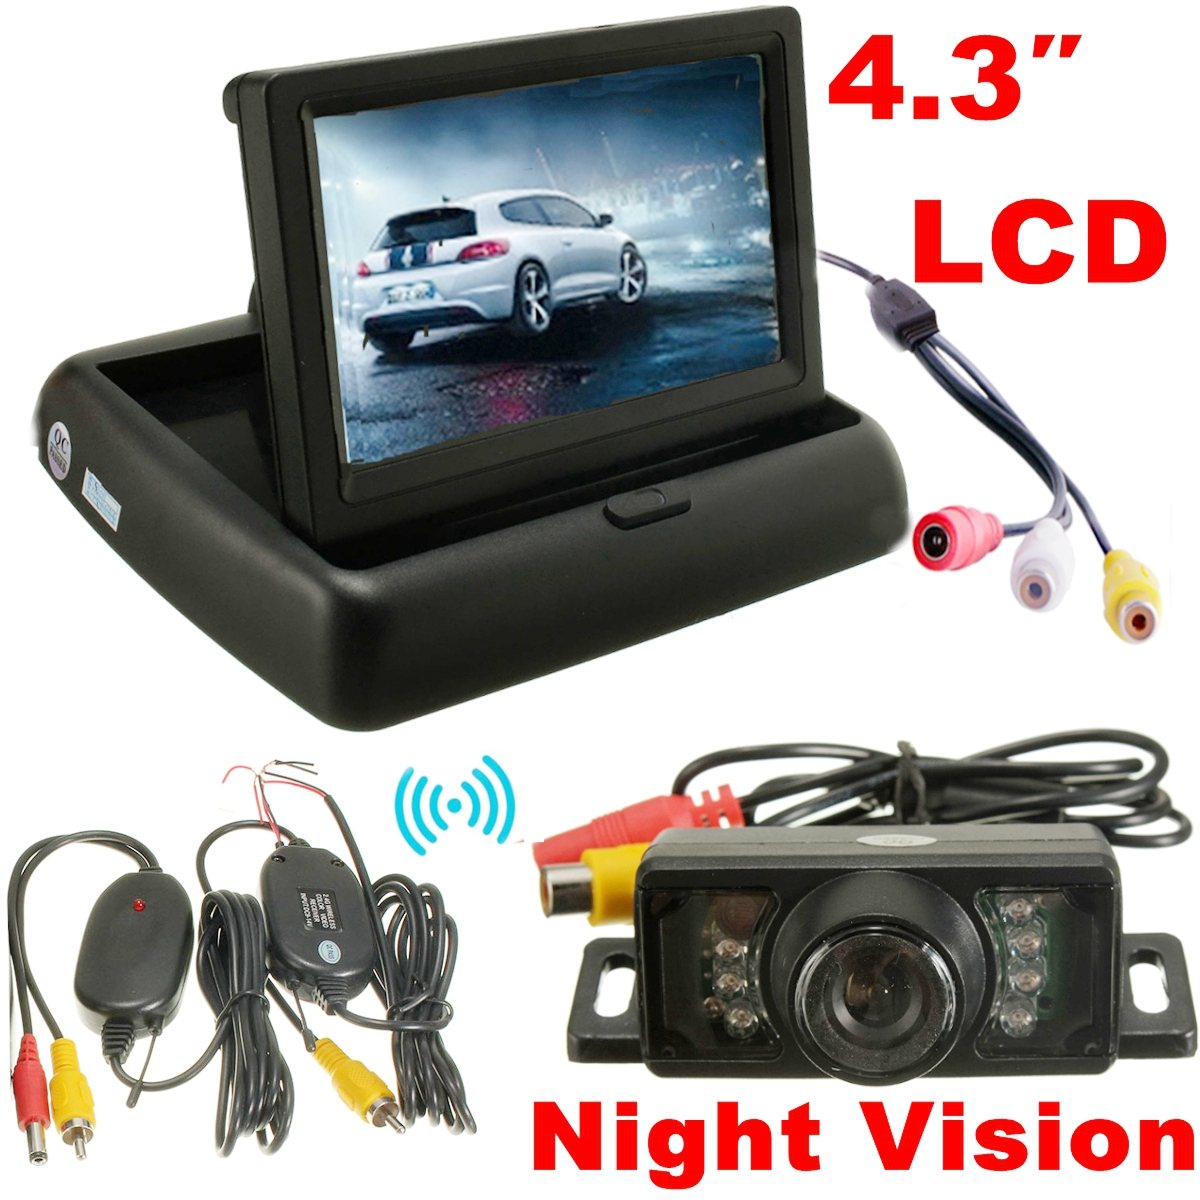 Car Foldable 4 3 Monitor Wireless IR Rearview Parking Reversing Camera Kit 120 Degree Angle Rear